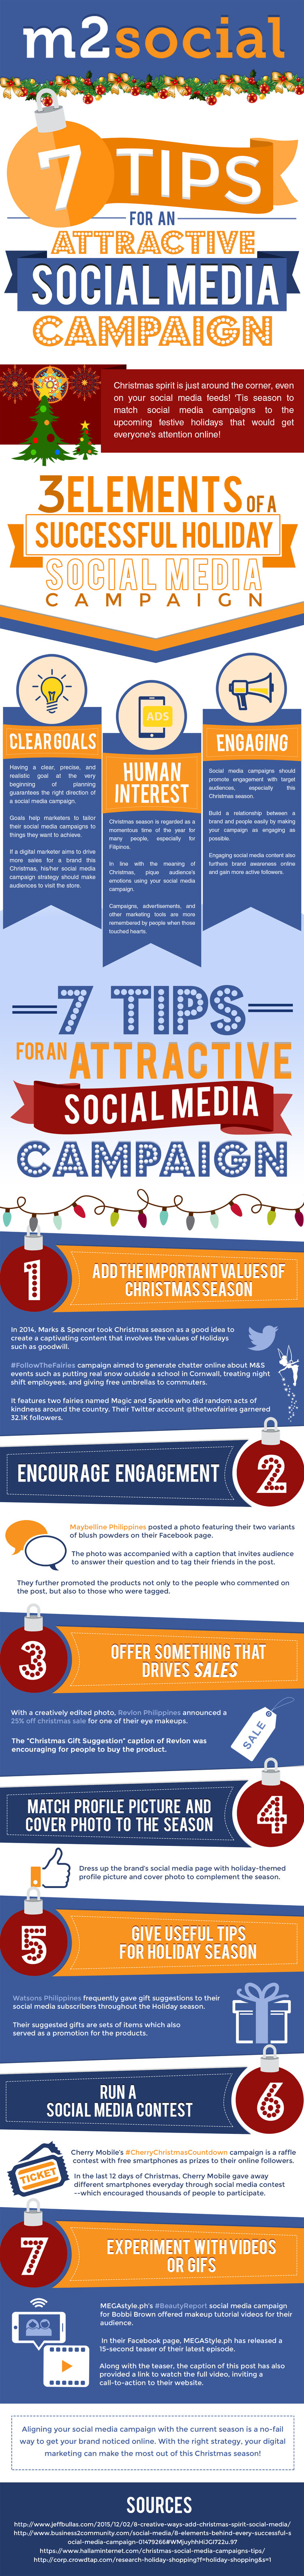 7 Tips For An Attractive Christmas Social Media Campaign